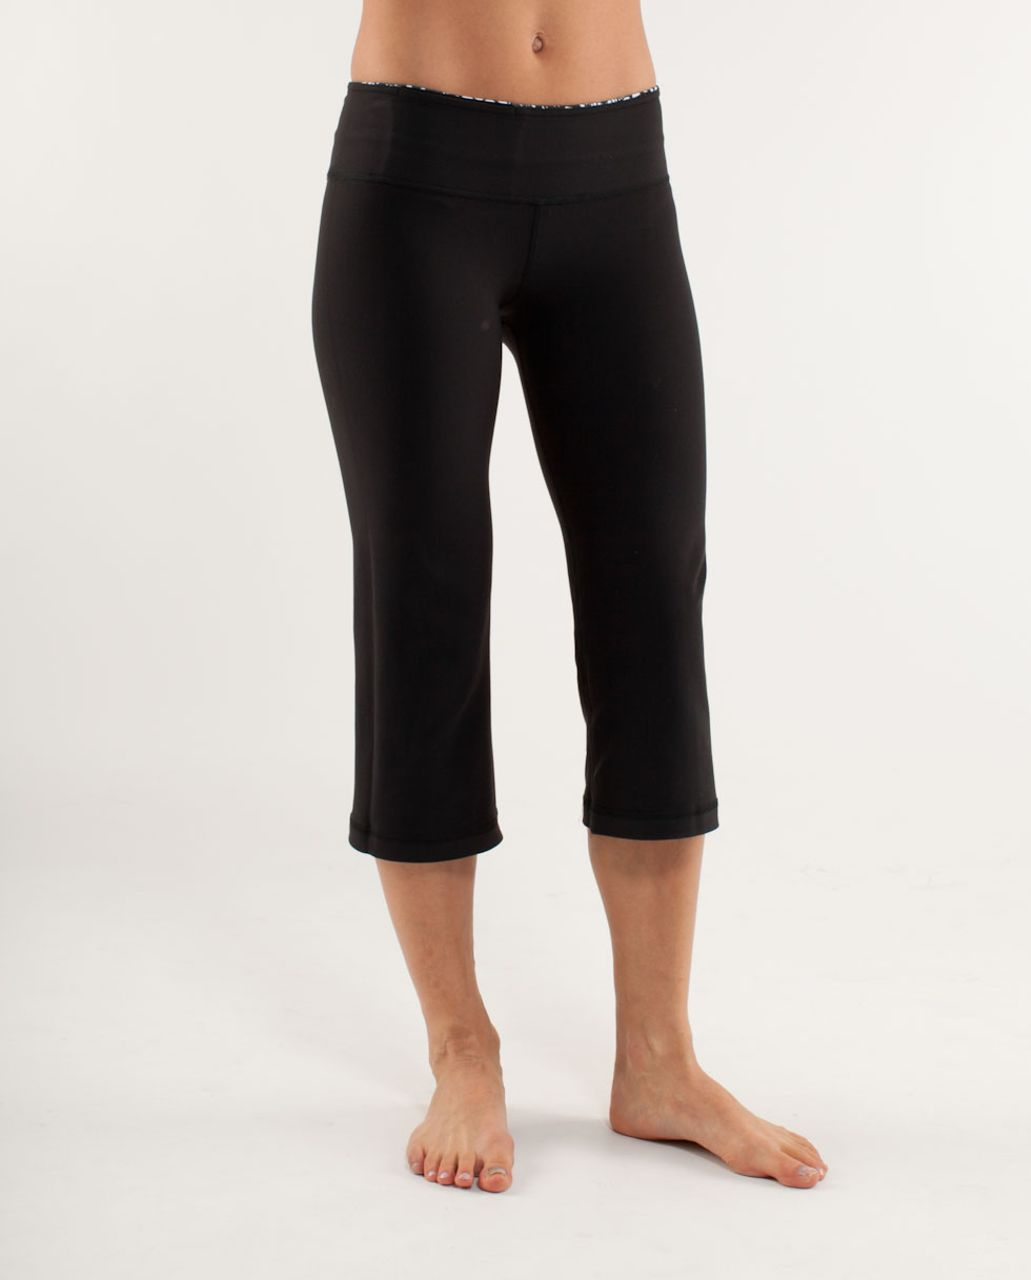 Lululemon Groove Crop - Black /  White Black Glacier Lace /  White Black Glacier Lace